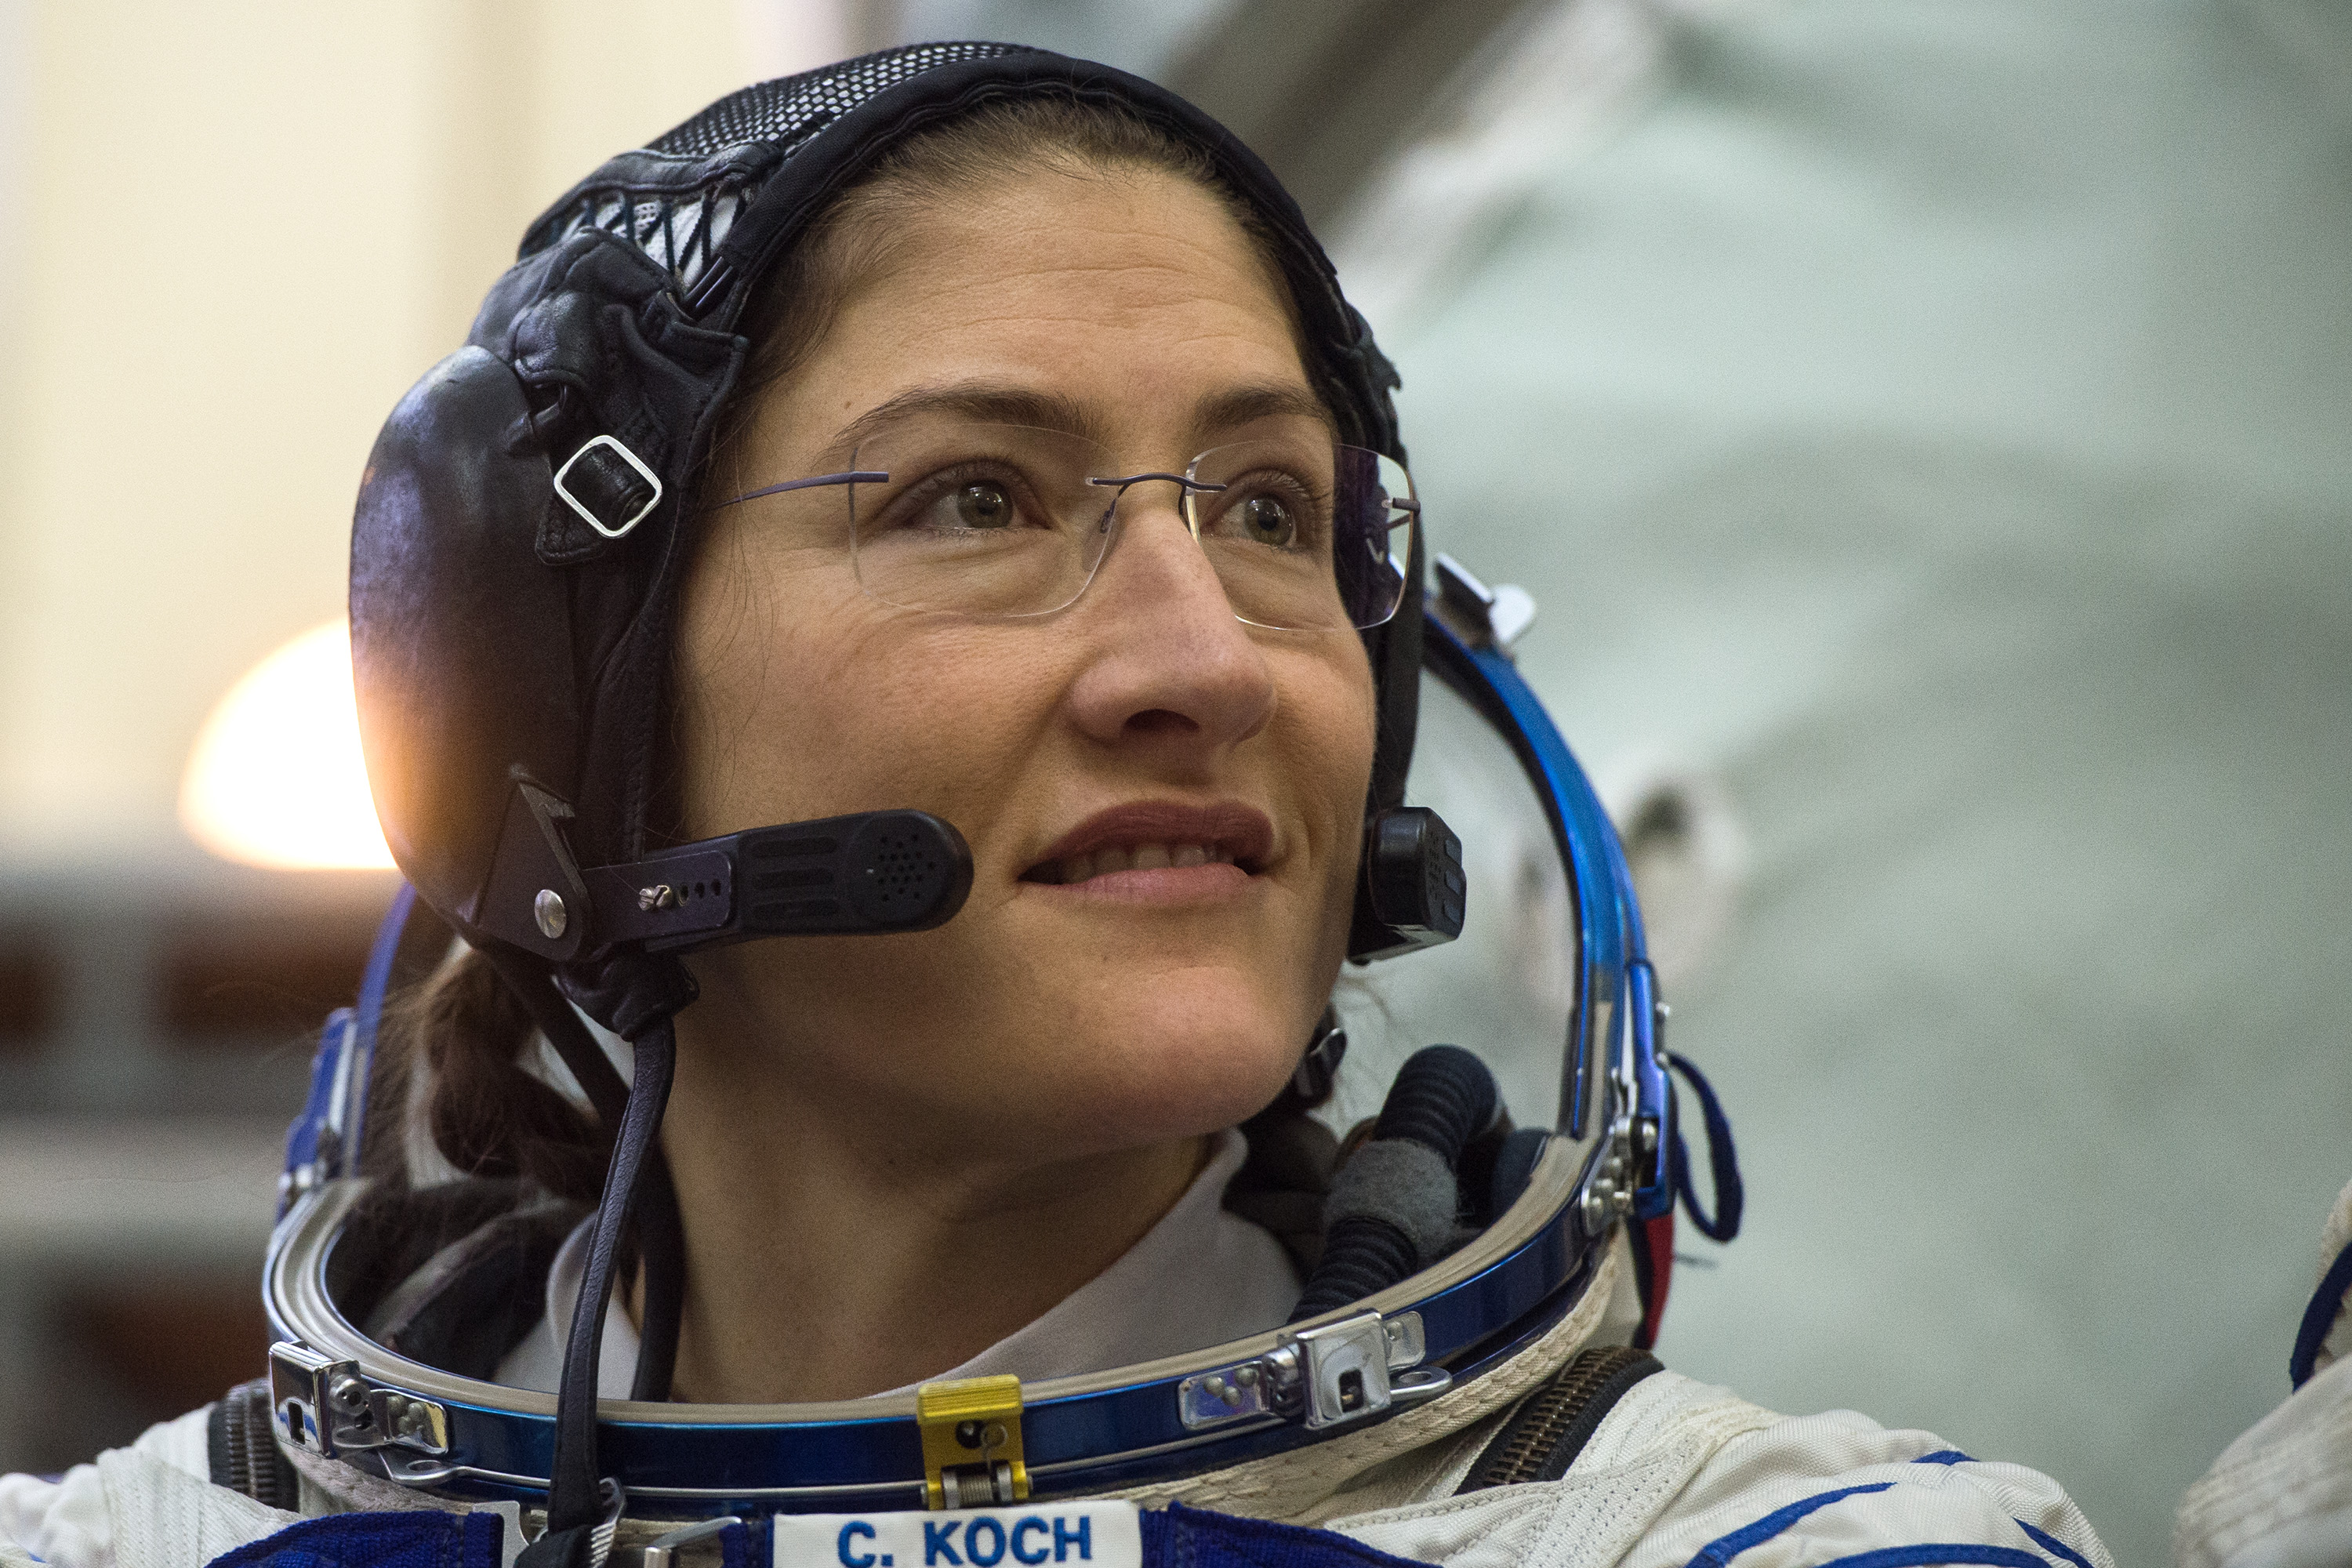 NASA is conducting its first-ever all-female spacewalk this month, and we're cheering at our desks